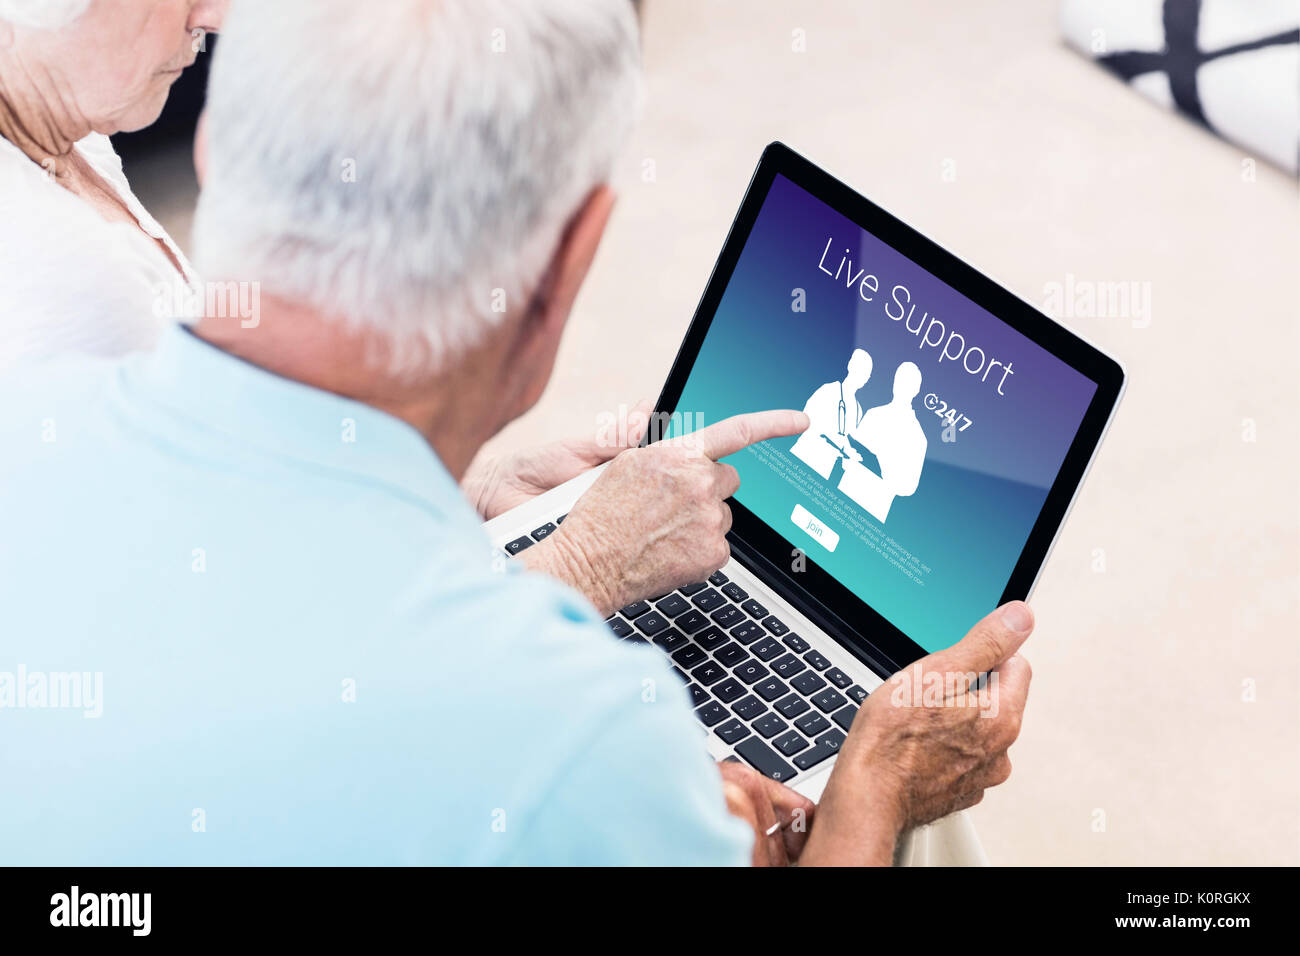 Human representations with live support text against focused senior couple using laptop Stock Photo